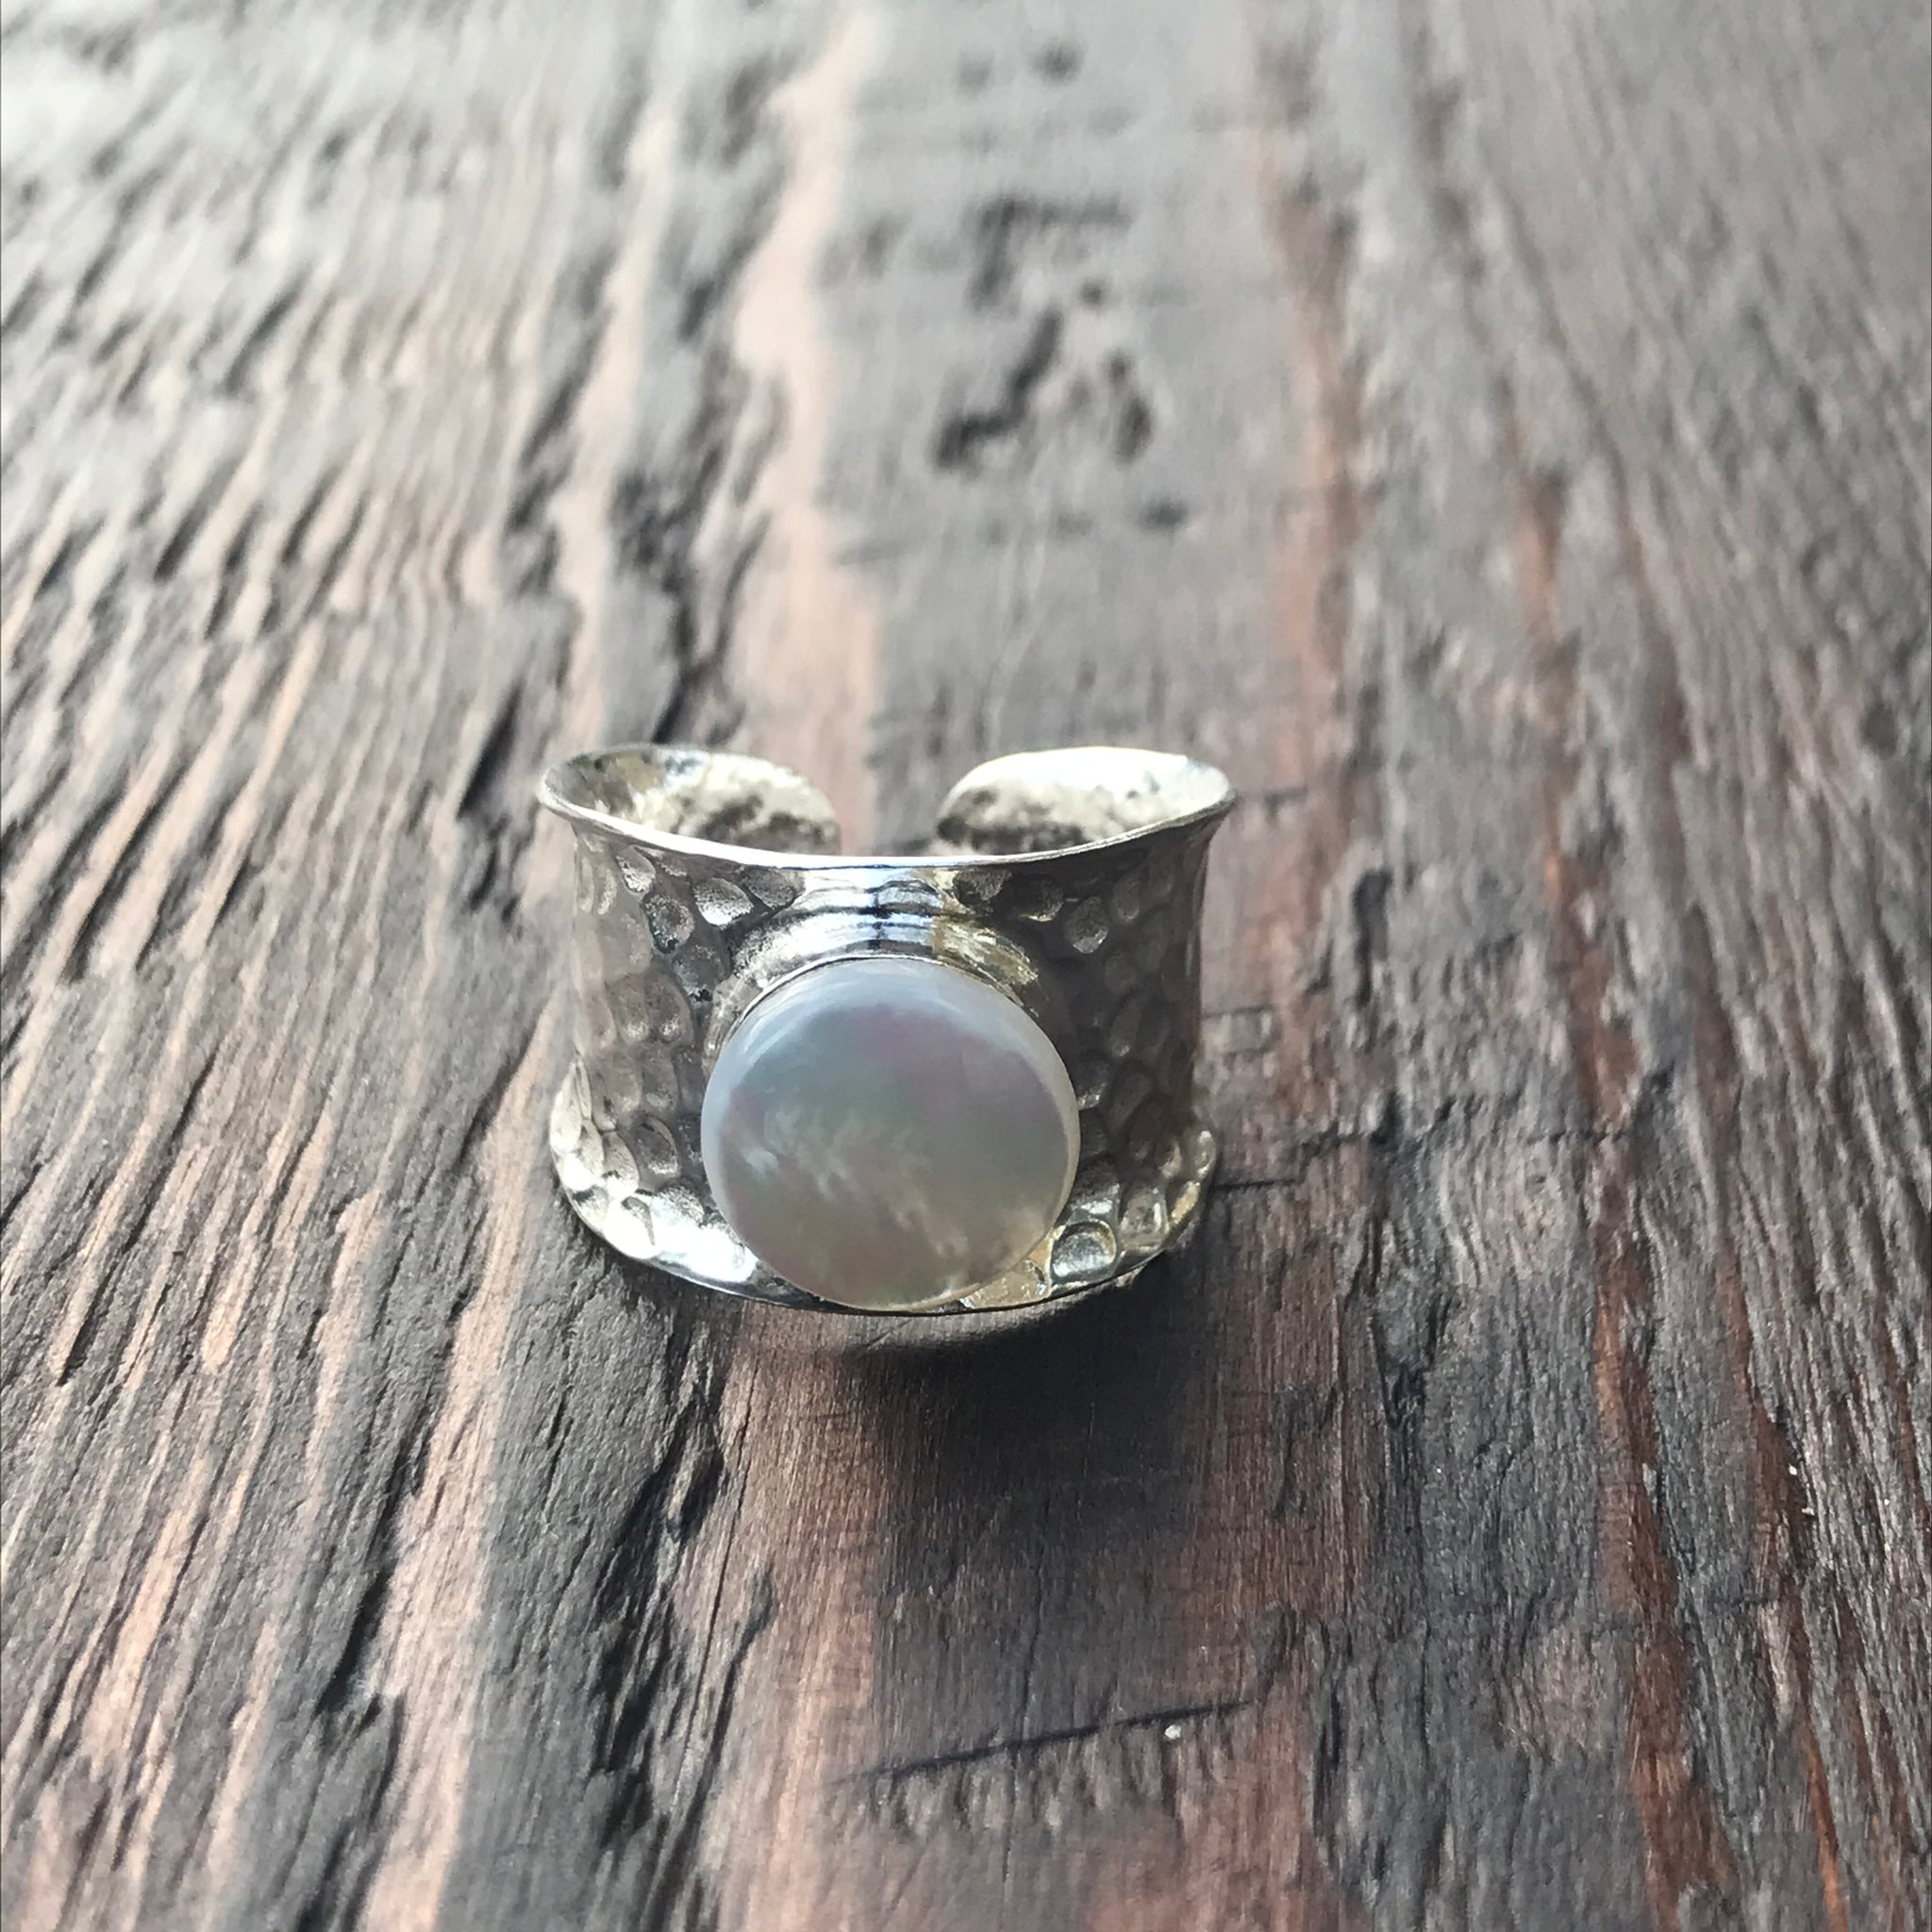 Hammered Finish Band Ring with Mother of Pearl